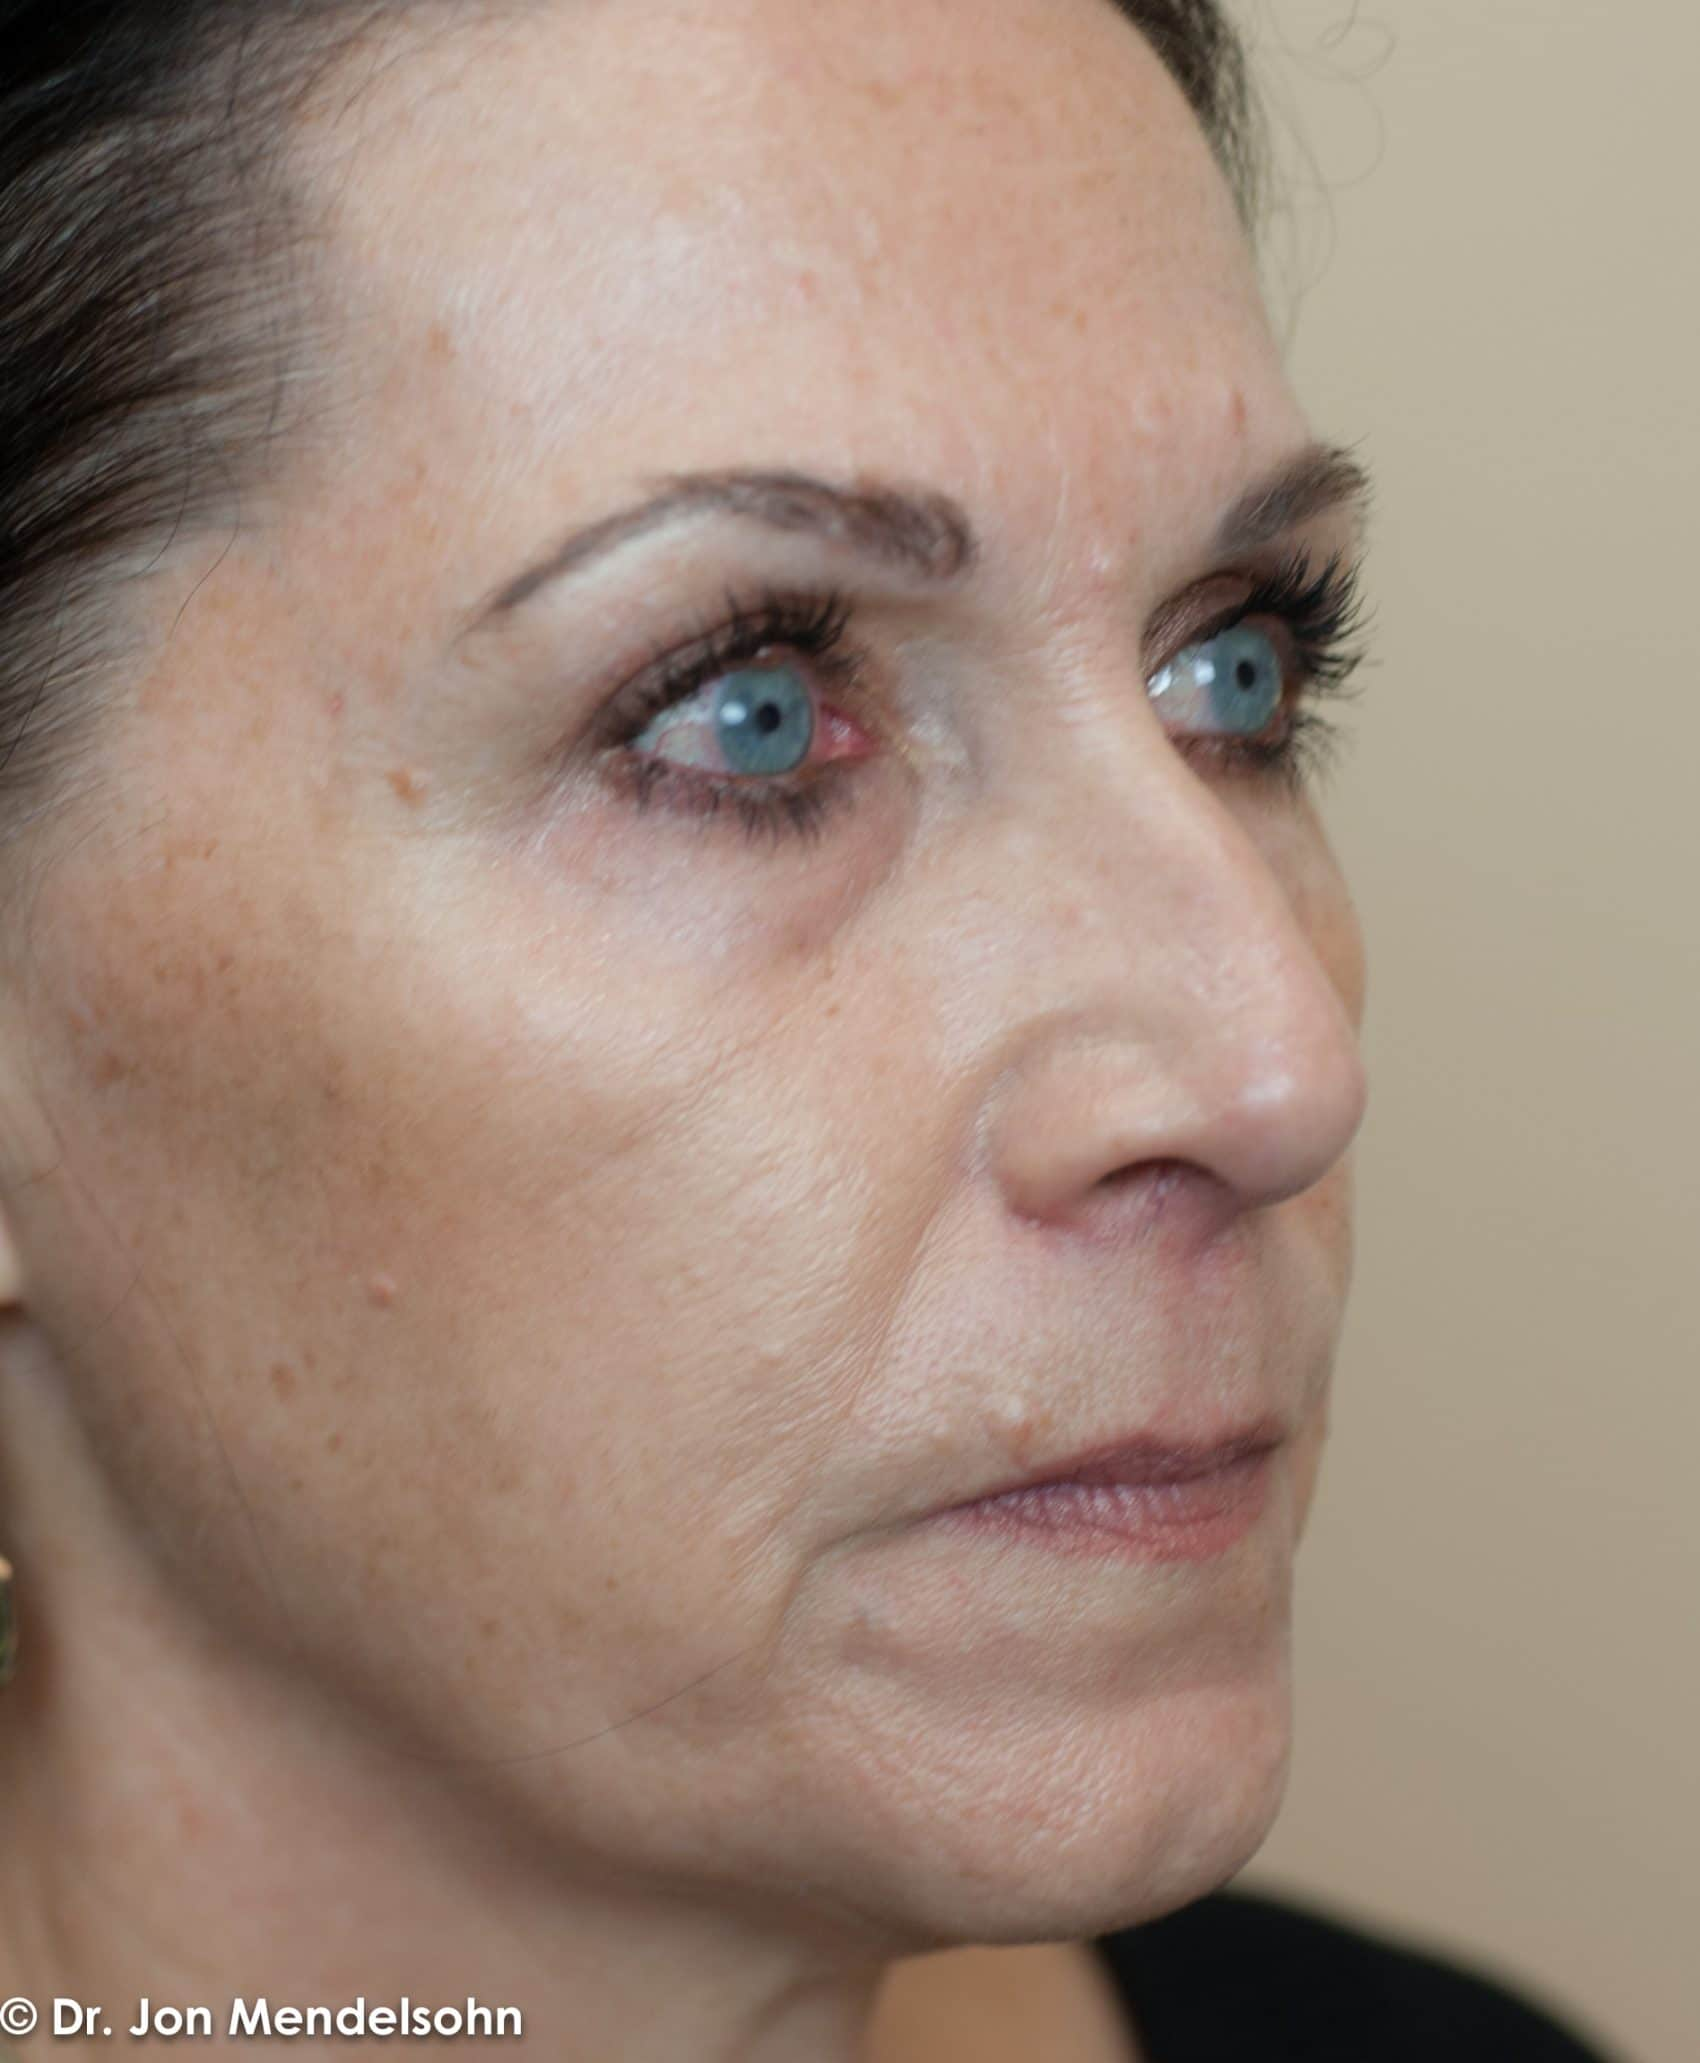 Upper-blepharoplasty-eyelid-surgery-cincinnati-dr-jon-mendelsohn-best-eyelid-surgery-plastic-surgery-realself-truseselfies-three-quarter-right-after-Drake-Robin-7477-2